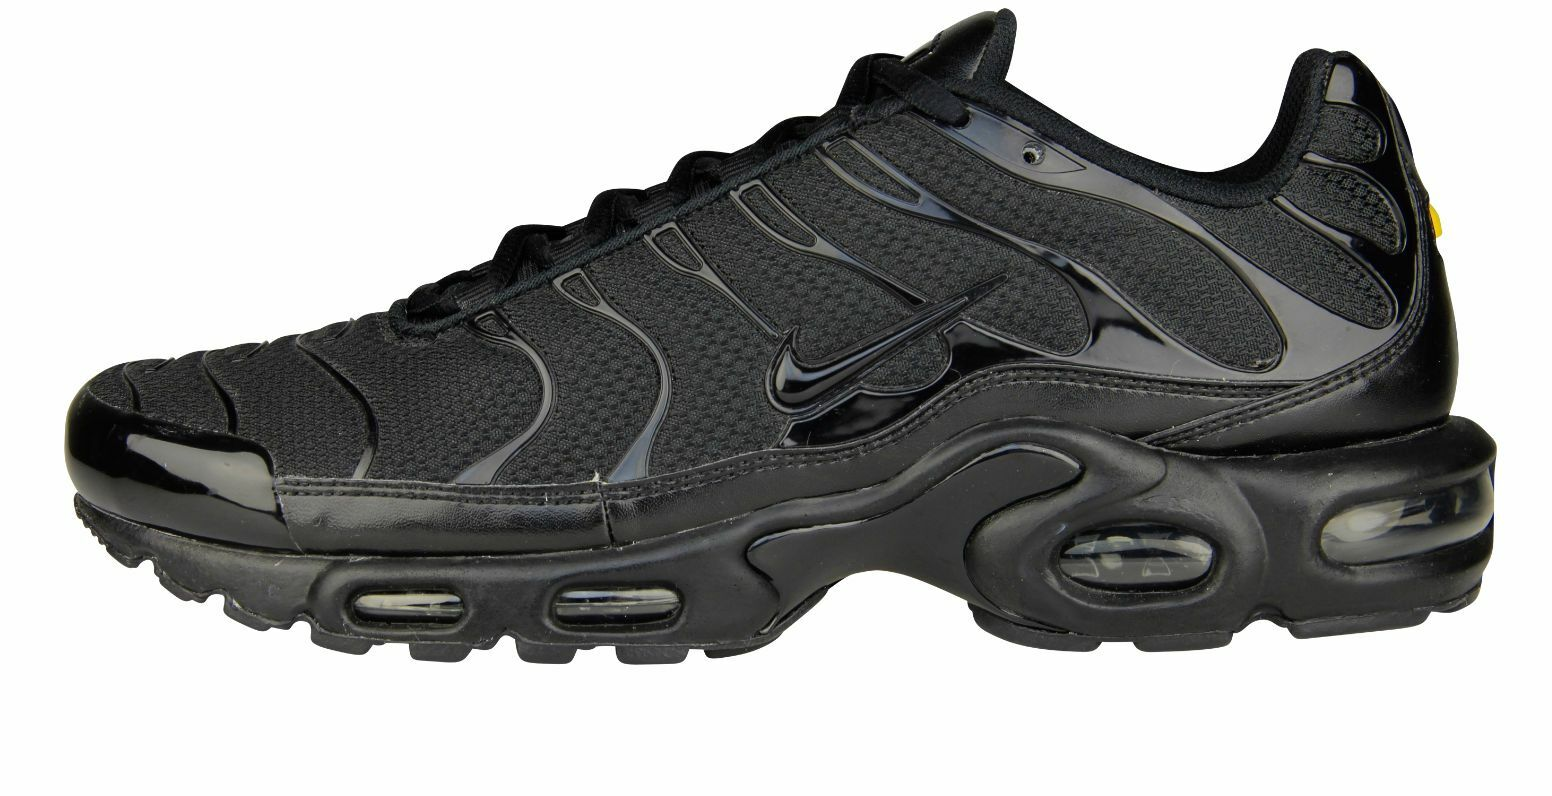 ee980994843 50%OFF Nike Air Max Plus Tuned 1 Tn Triple Black 6 7 8 9 10 11 12 ...